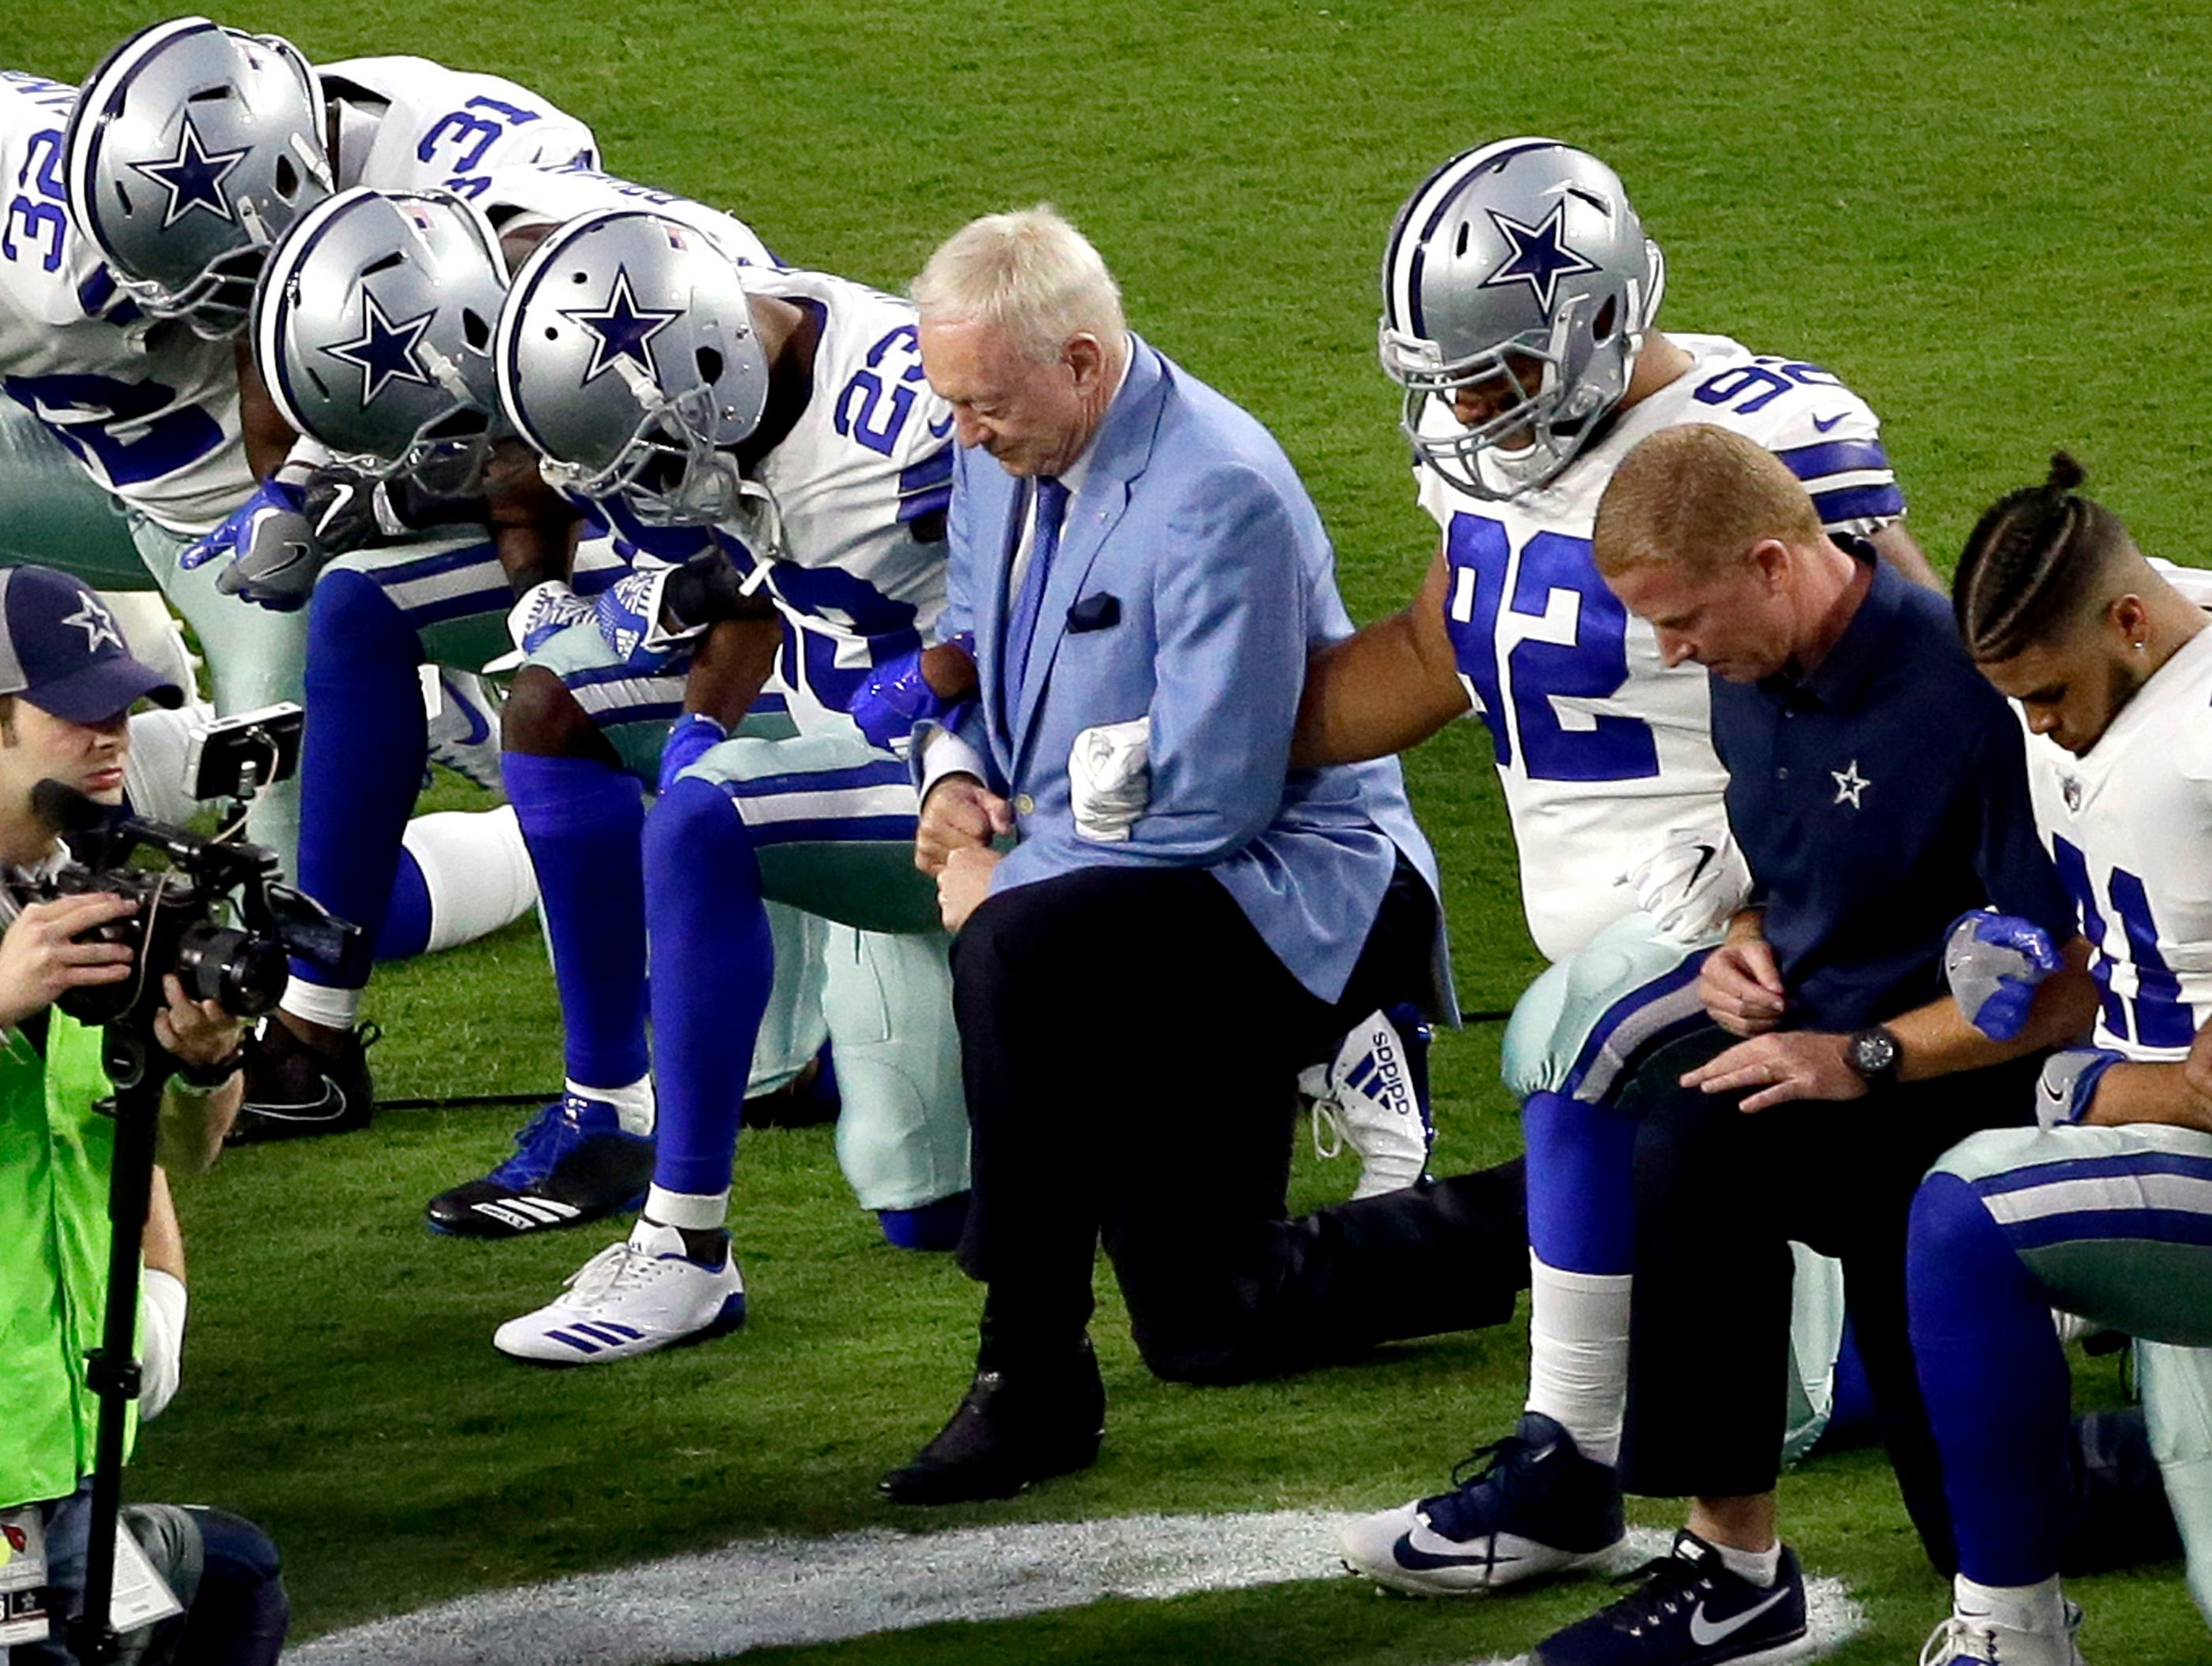 Stephen Jones: 'If they want to be a Dallas Cowboy,' players better stand for anthem